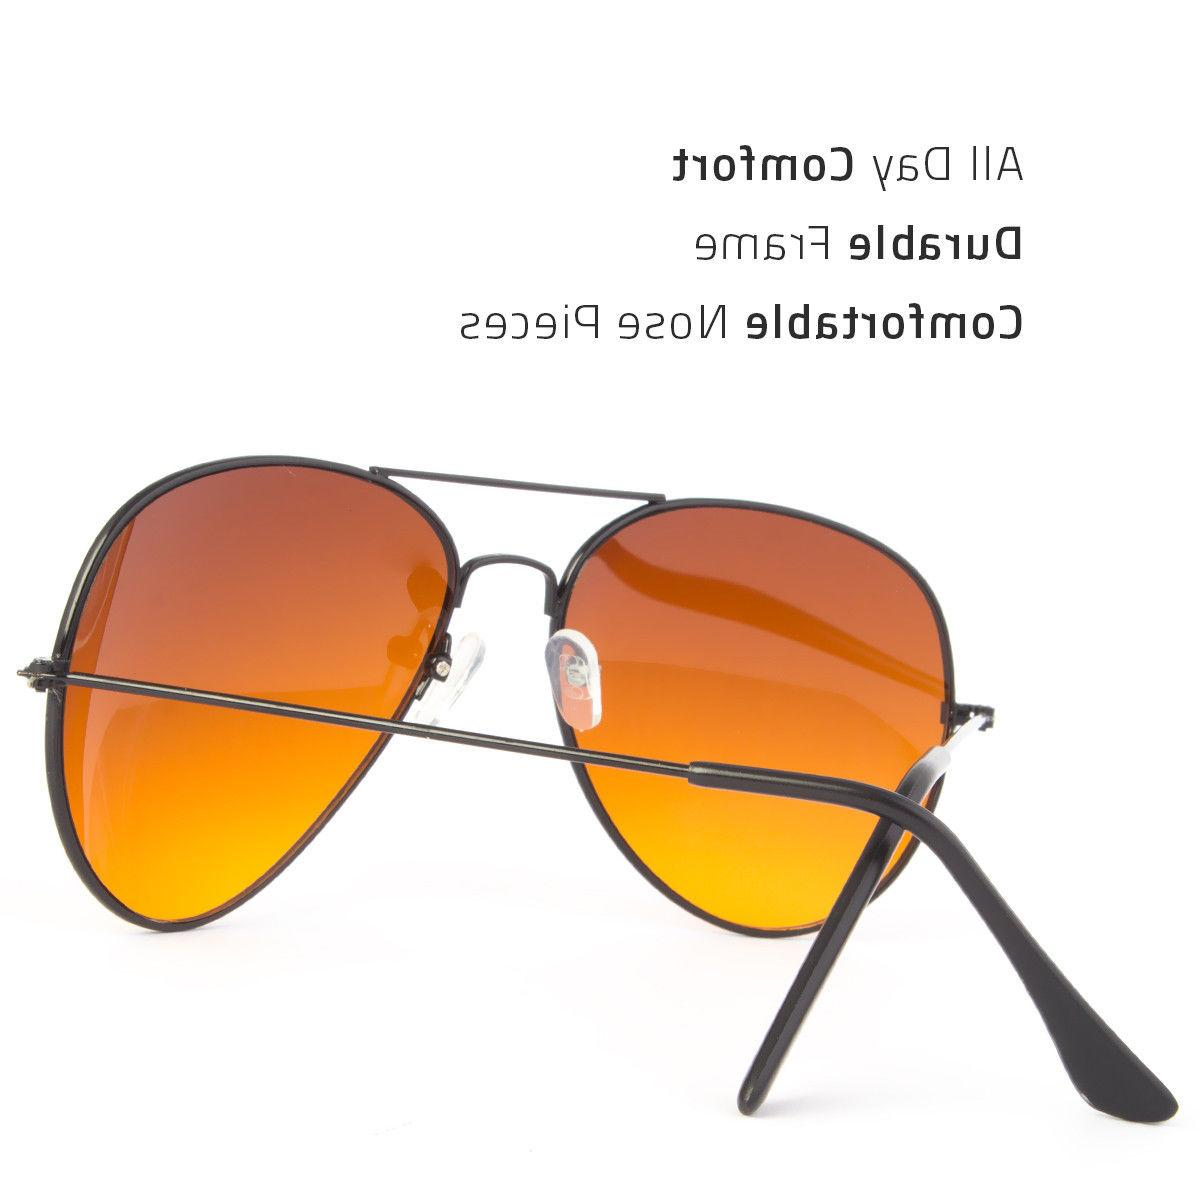 Hd Aviator Amber